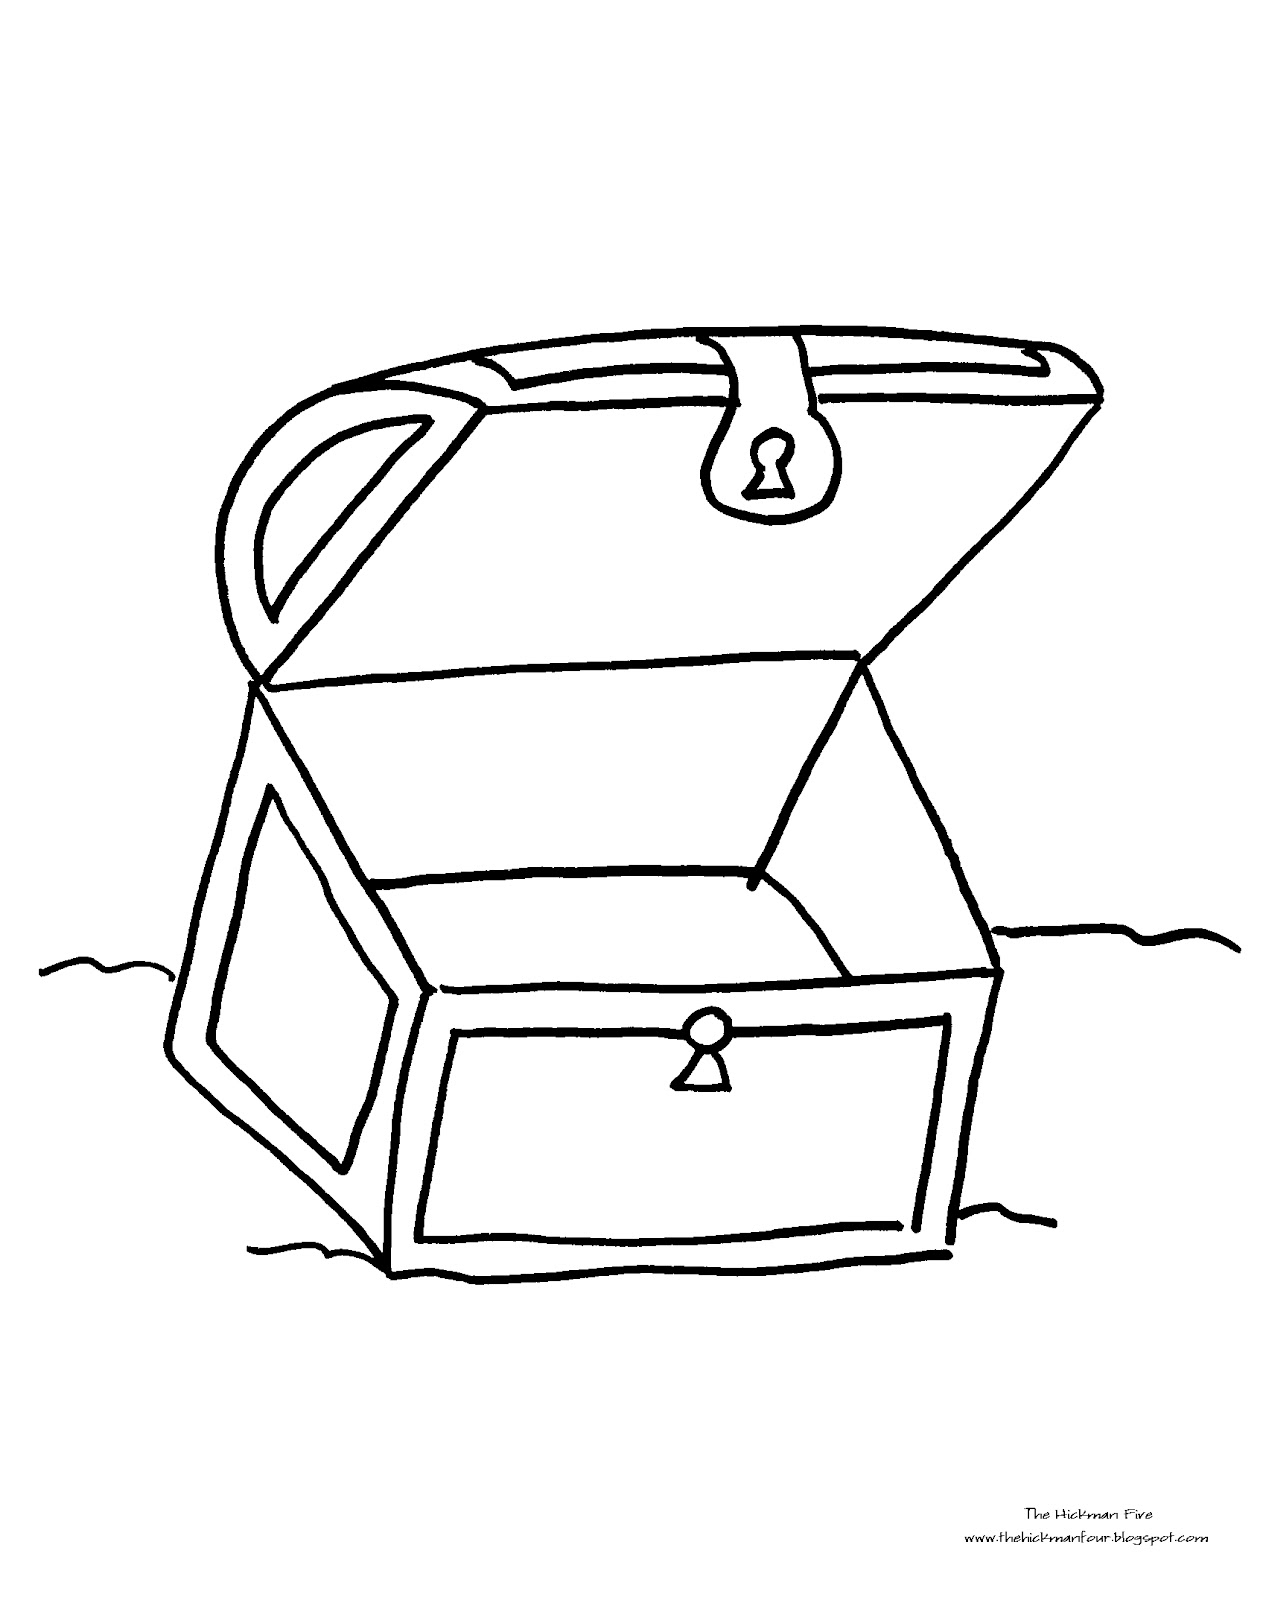 Free Black And White Outline Of A Treasure Chest Download